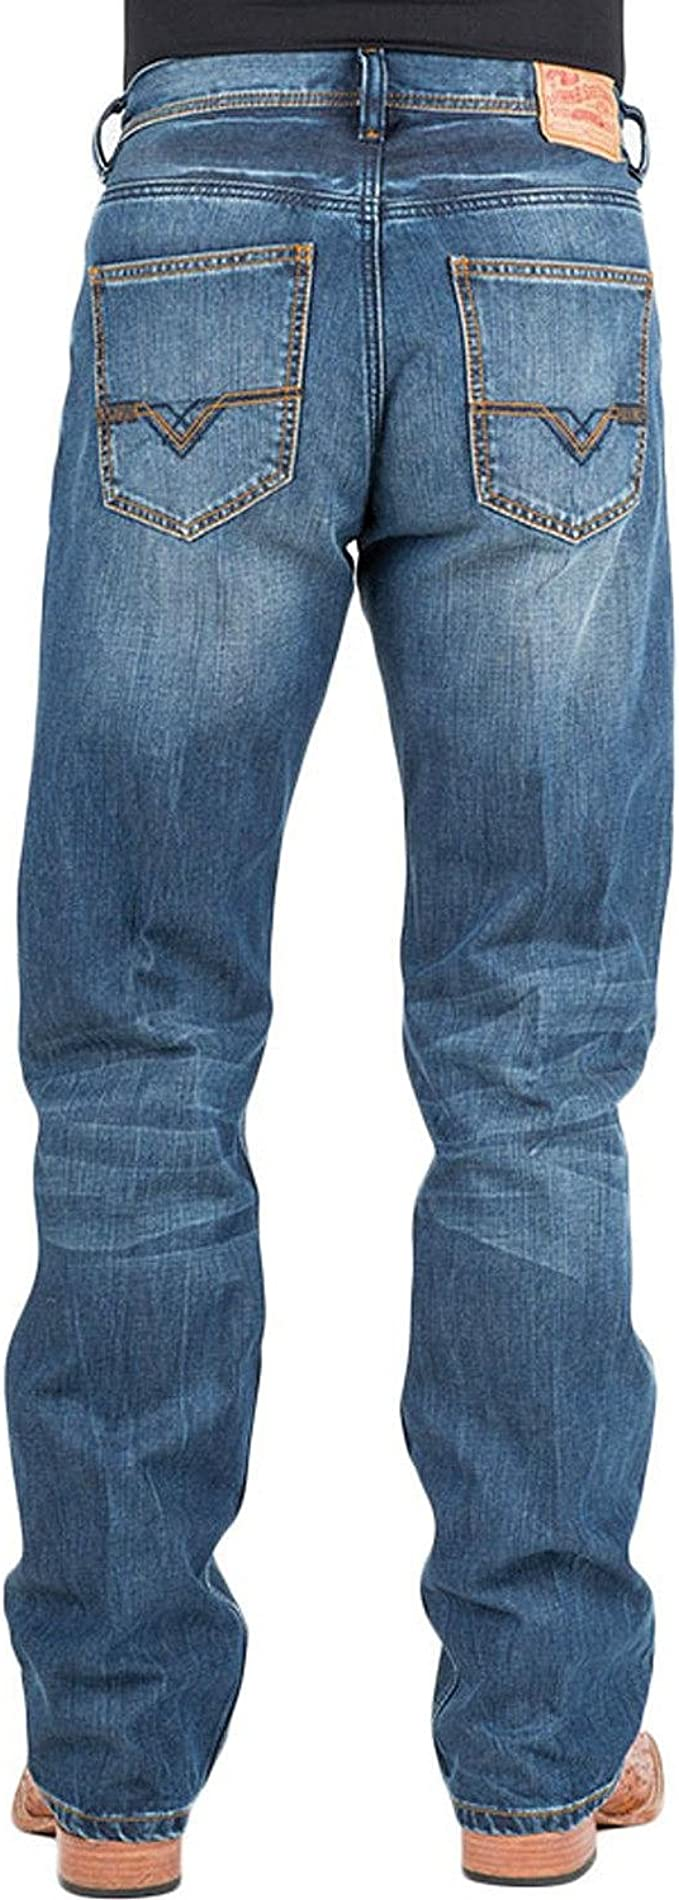 Stetson Mens Modern Fit Lower Rise Relaxed Thigh Loose Knee Jean